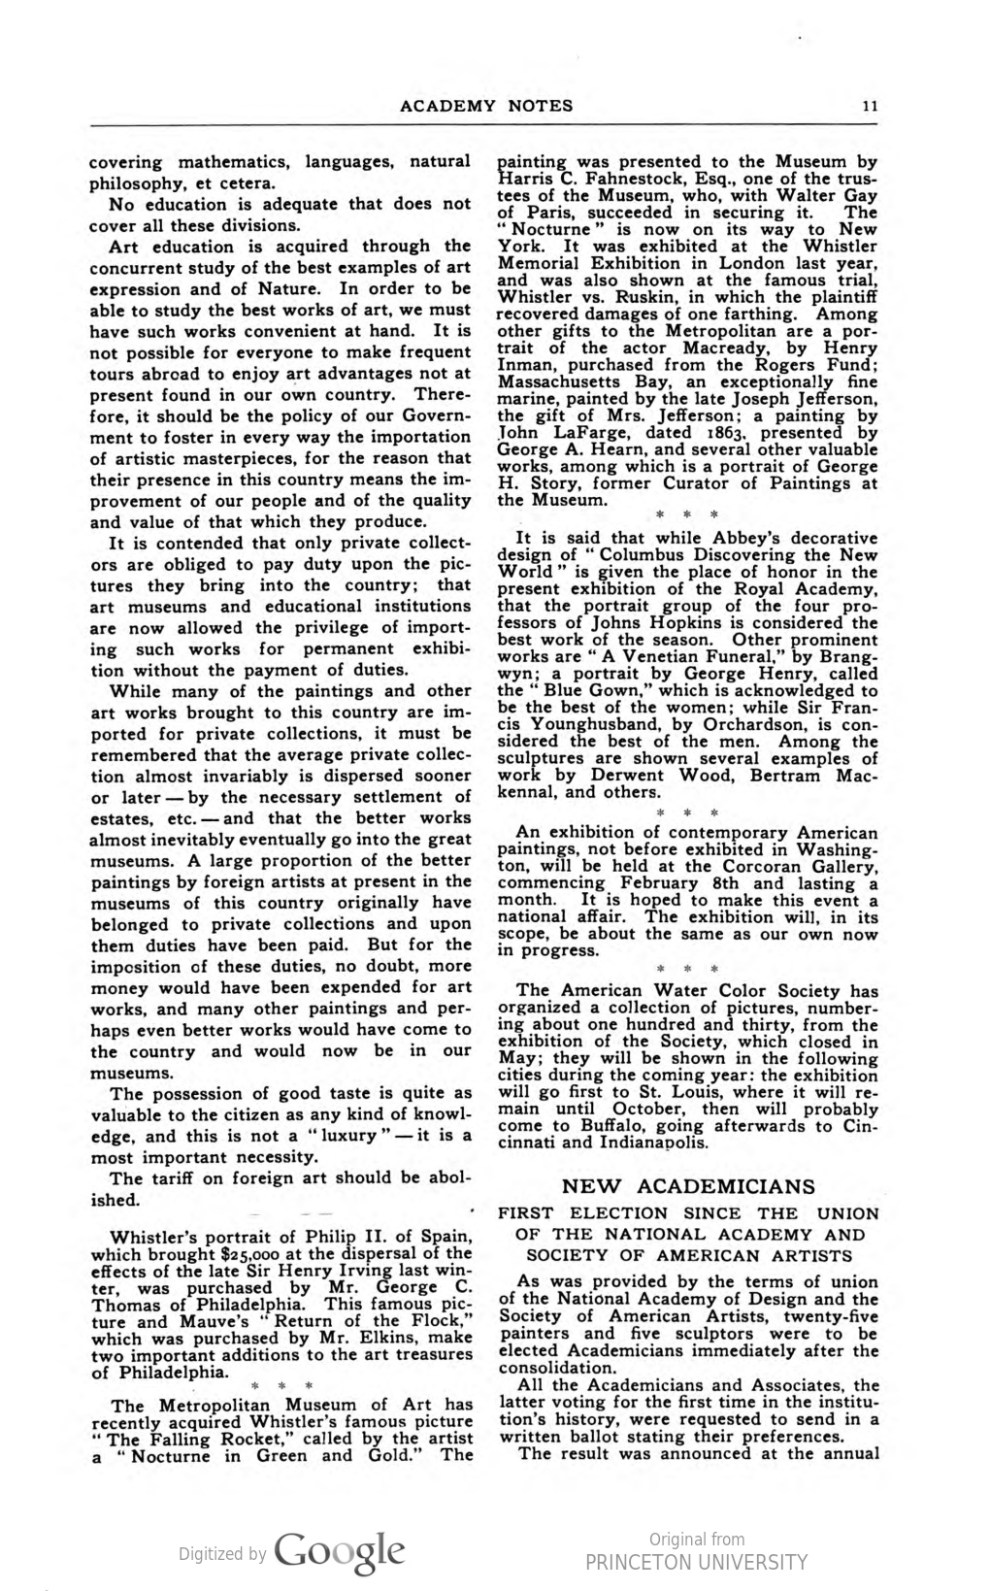 "Academy Notes, Buffalo Fine Arts Academy, Albright Art Gallery, Buffalo, NY, ""New Academicians First Election Since The Union of the National Academy and Society of American Artists"", June, 1906, Volume 2, Number 1, page 11-12, not illustrated"